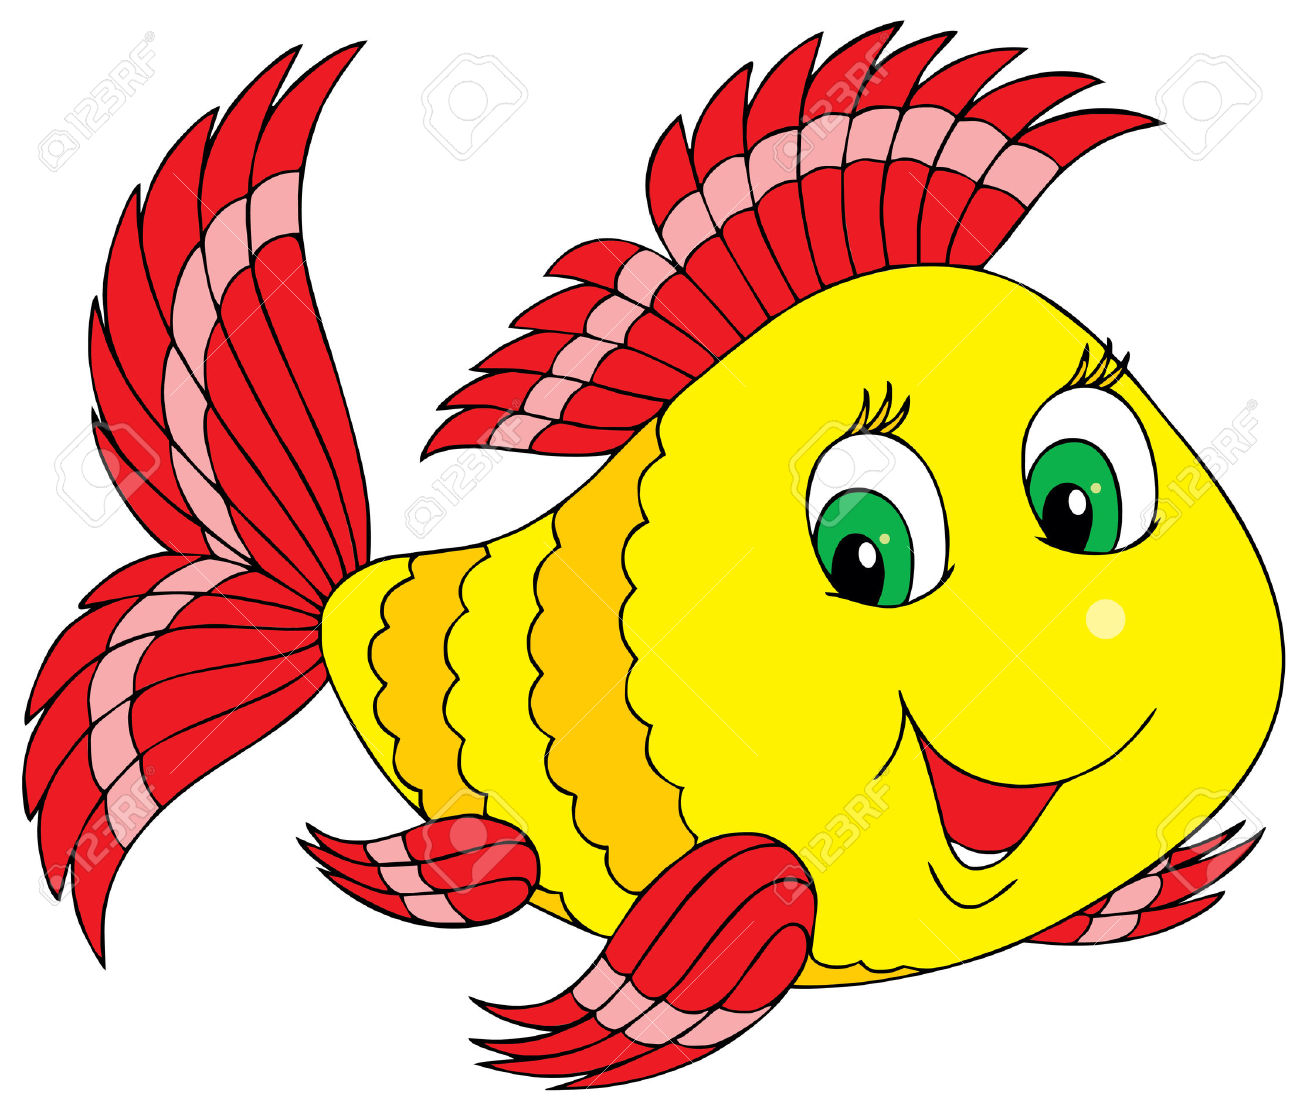 Fish clipart #3, Download drawings